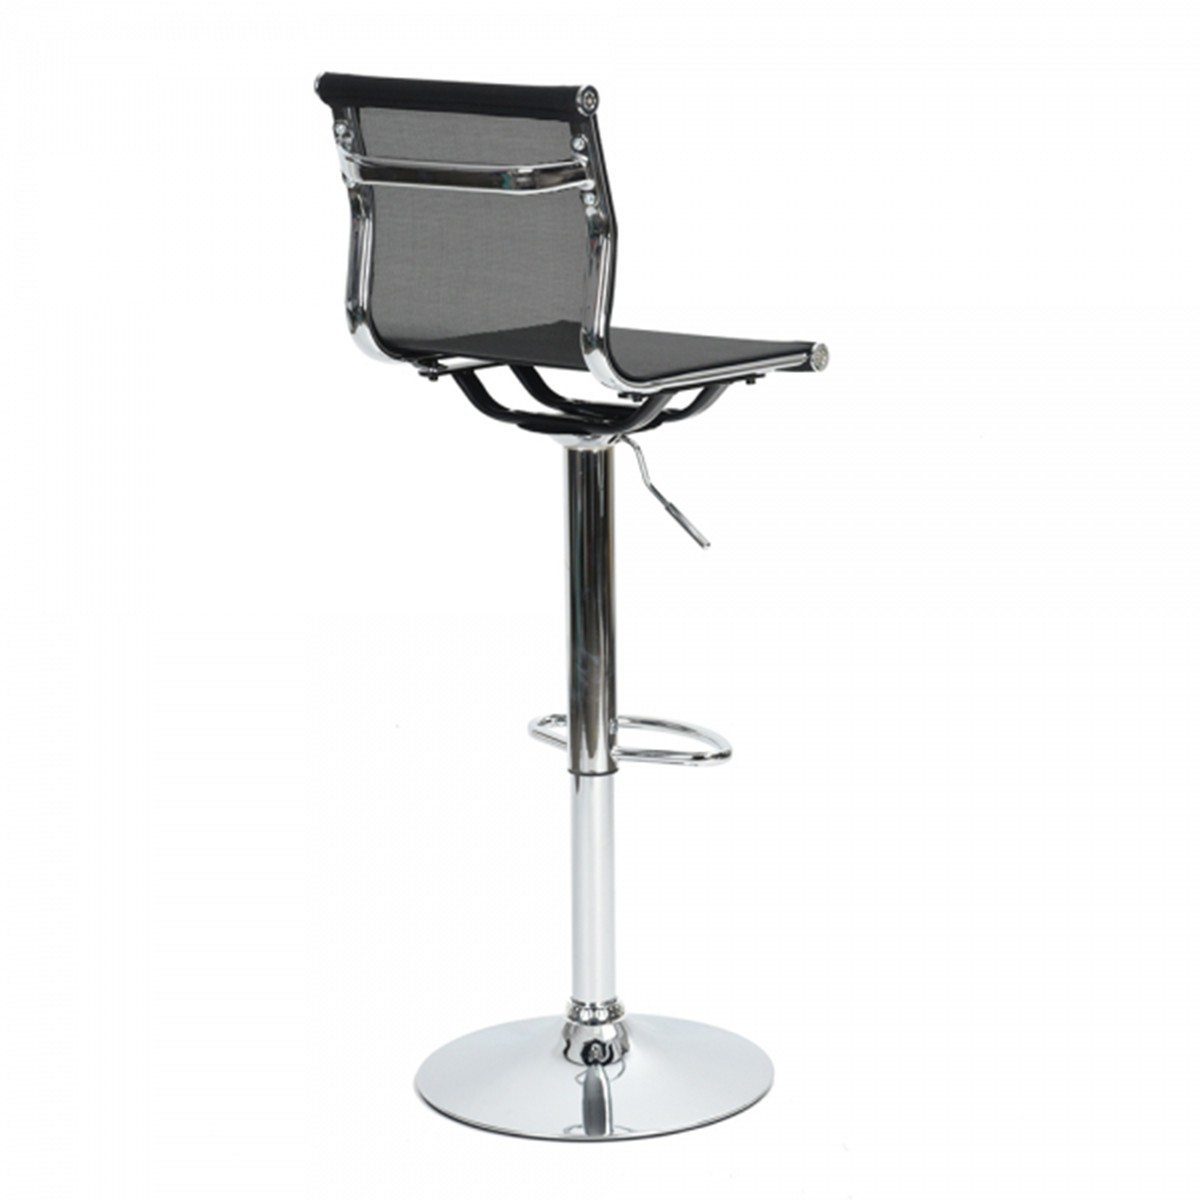 Tabouret de bar assise base